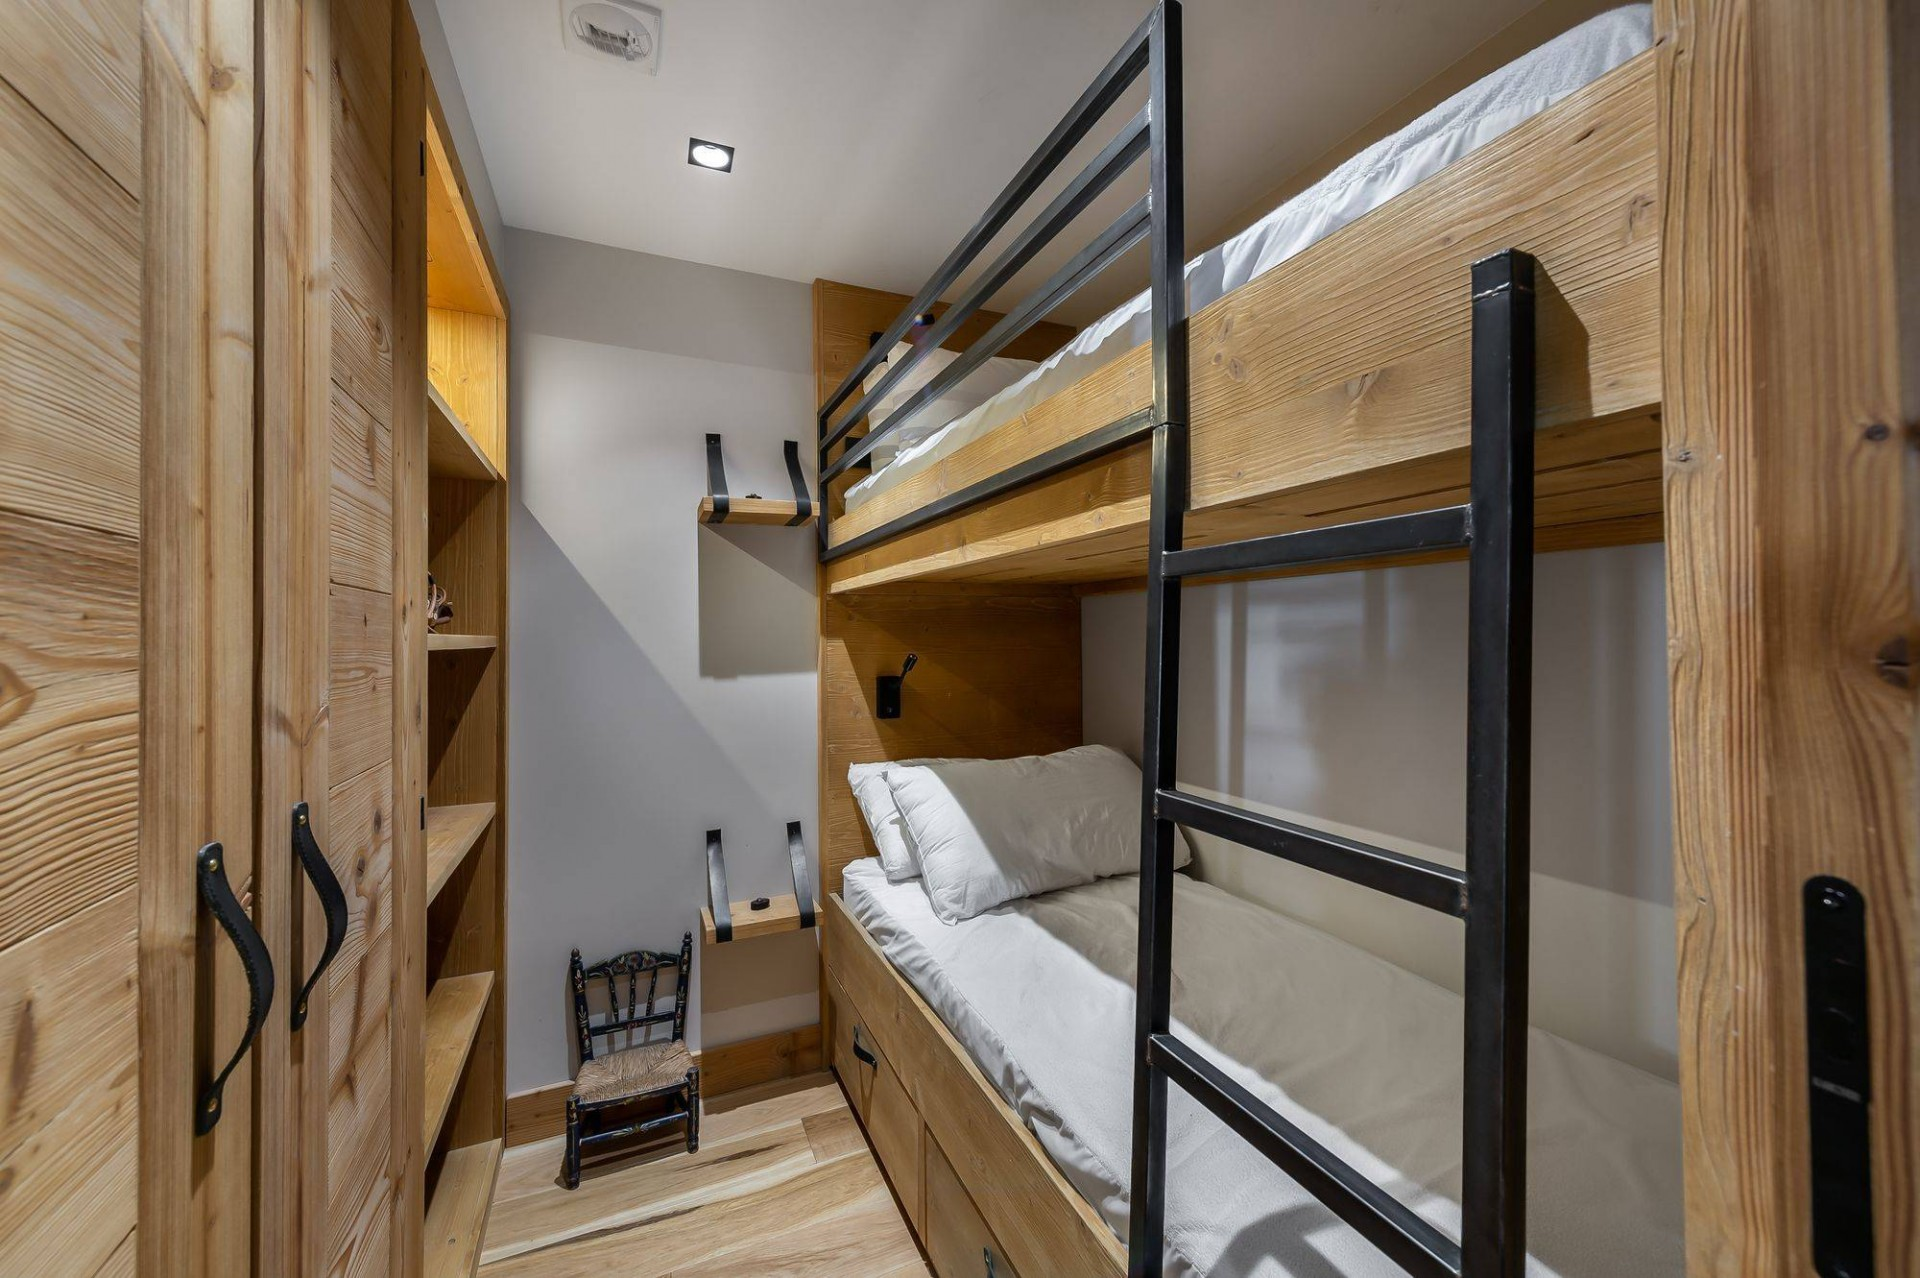 Val d'Isère Location Appartement Luxe Virlonte Chambre 3